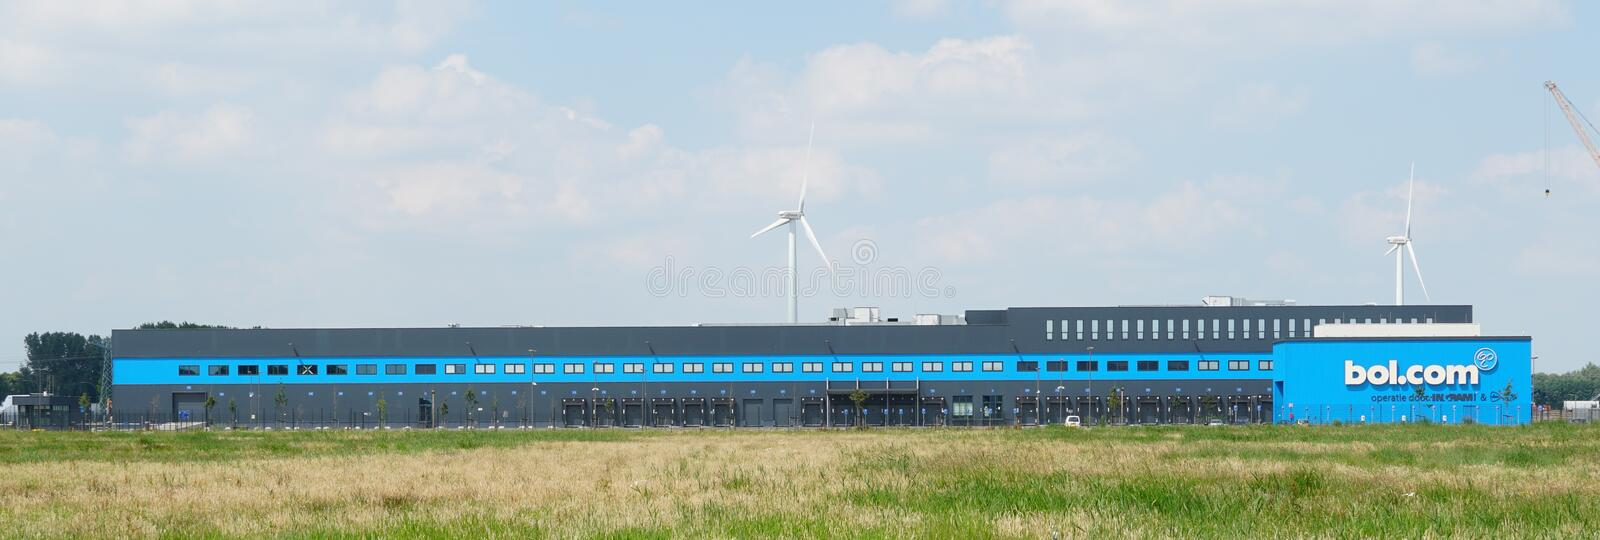 Bol.com distribution center in Waalwijk. Waalwijk, the Netherlands. June 2019. Distribution center for Bol.com in Waalwijk, a leading internet shop in the royalty free stock photo